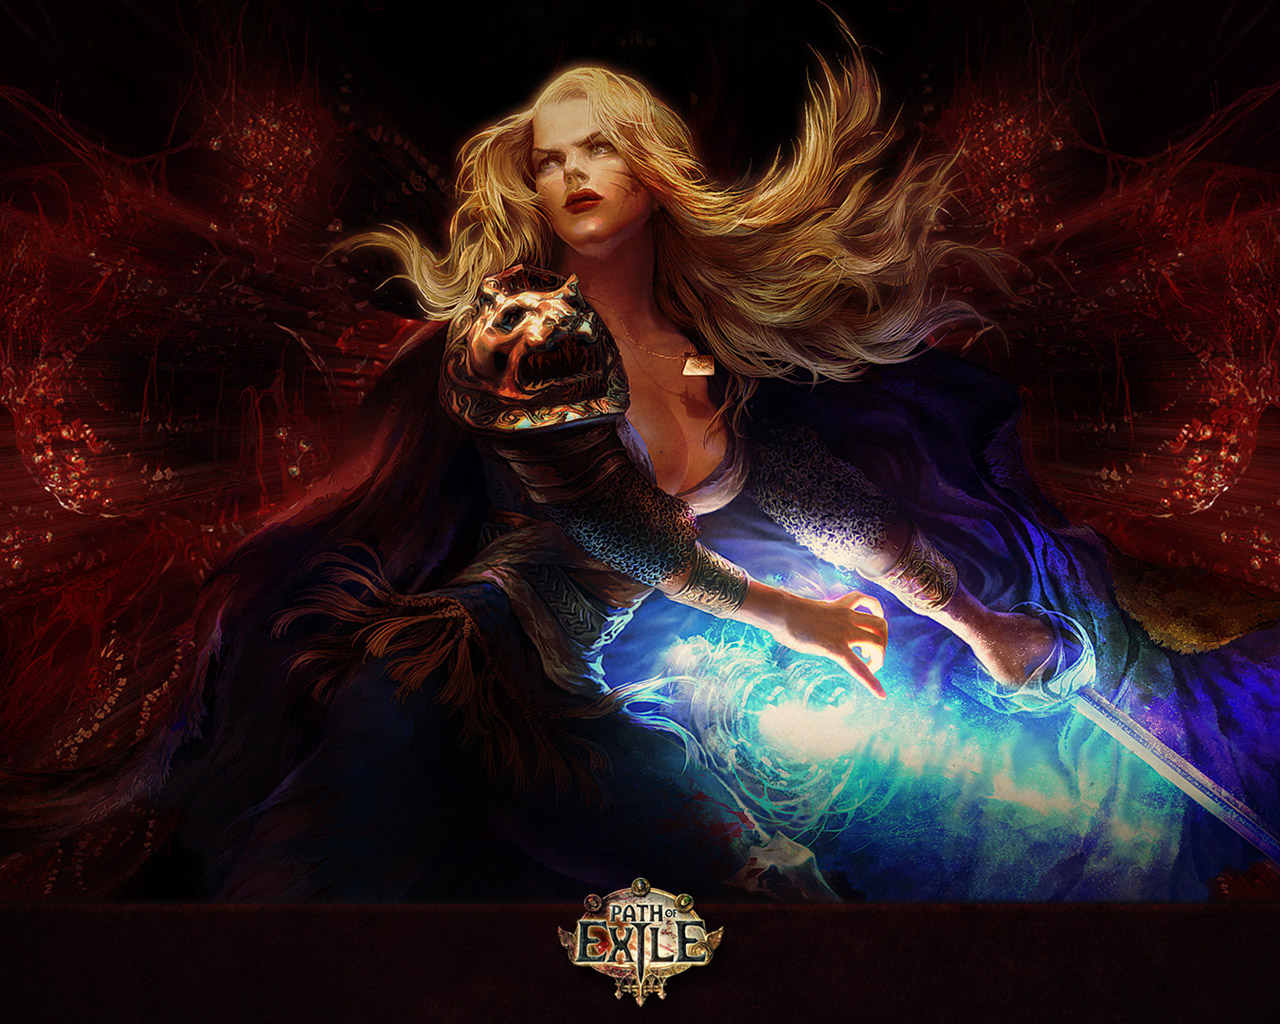 Path of Exile Wallpaper in 1280x1024